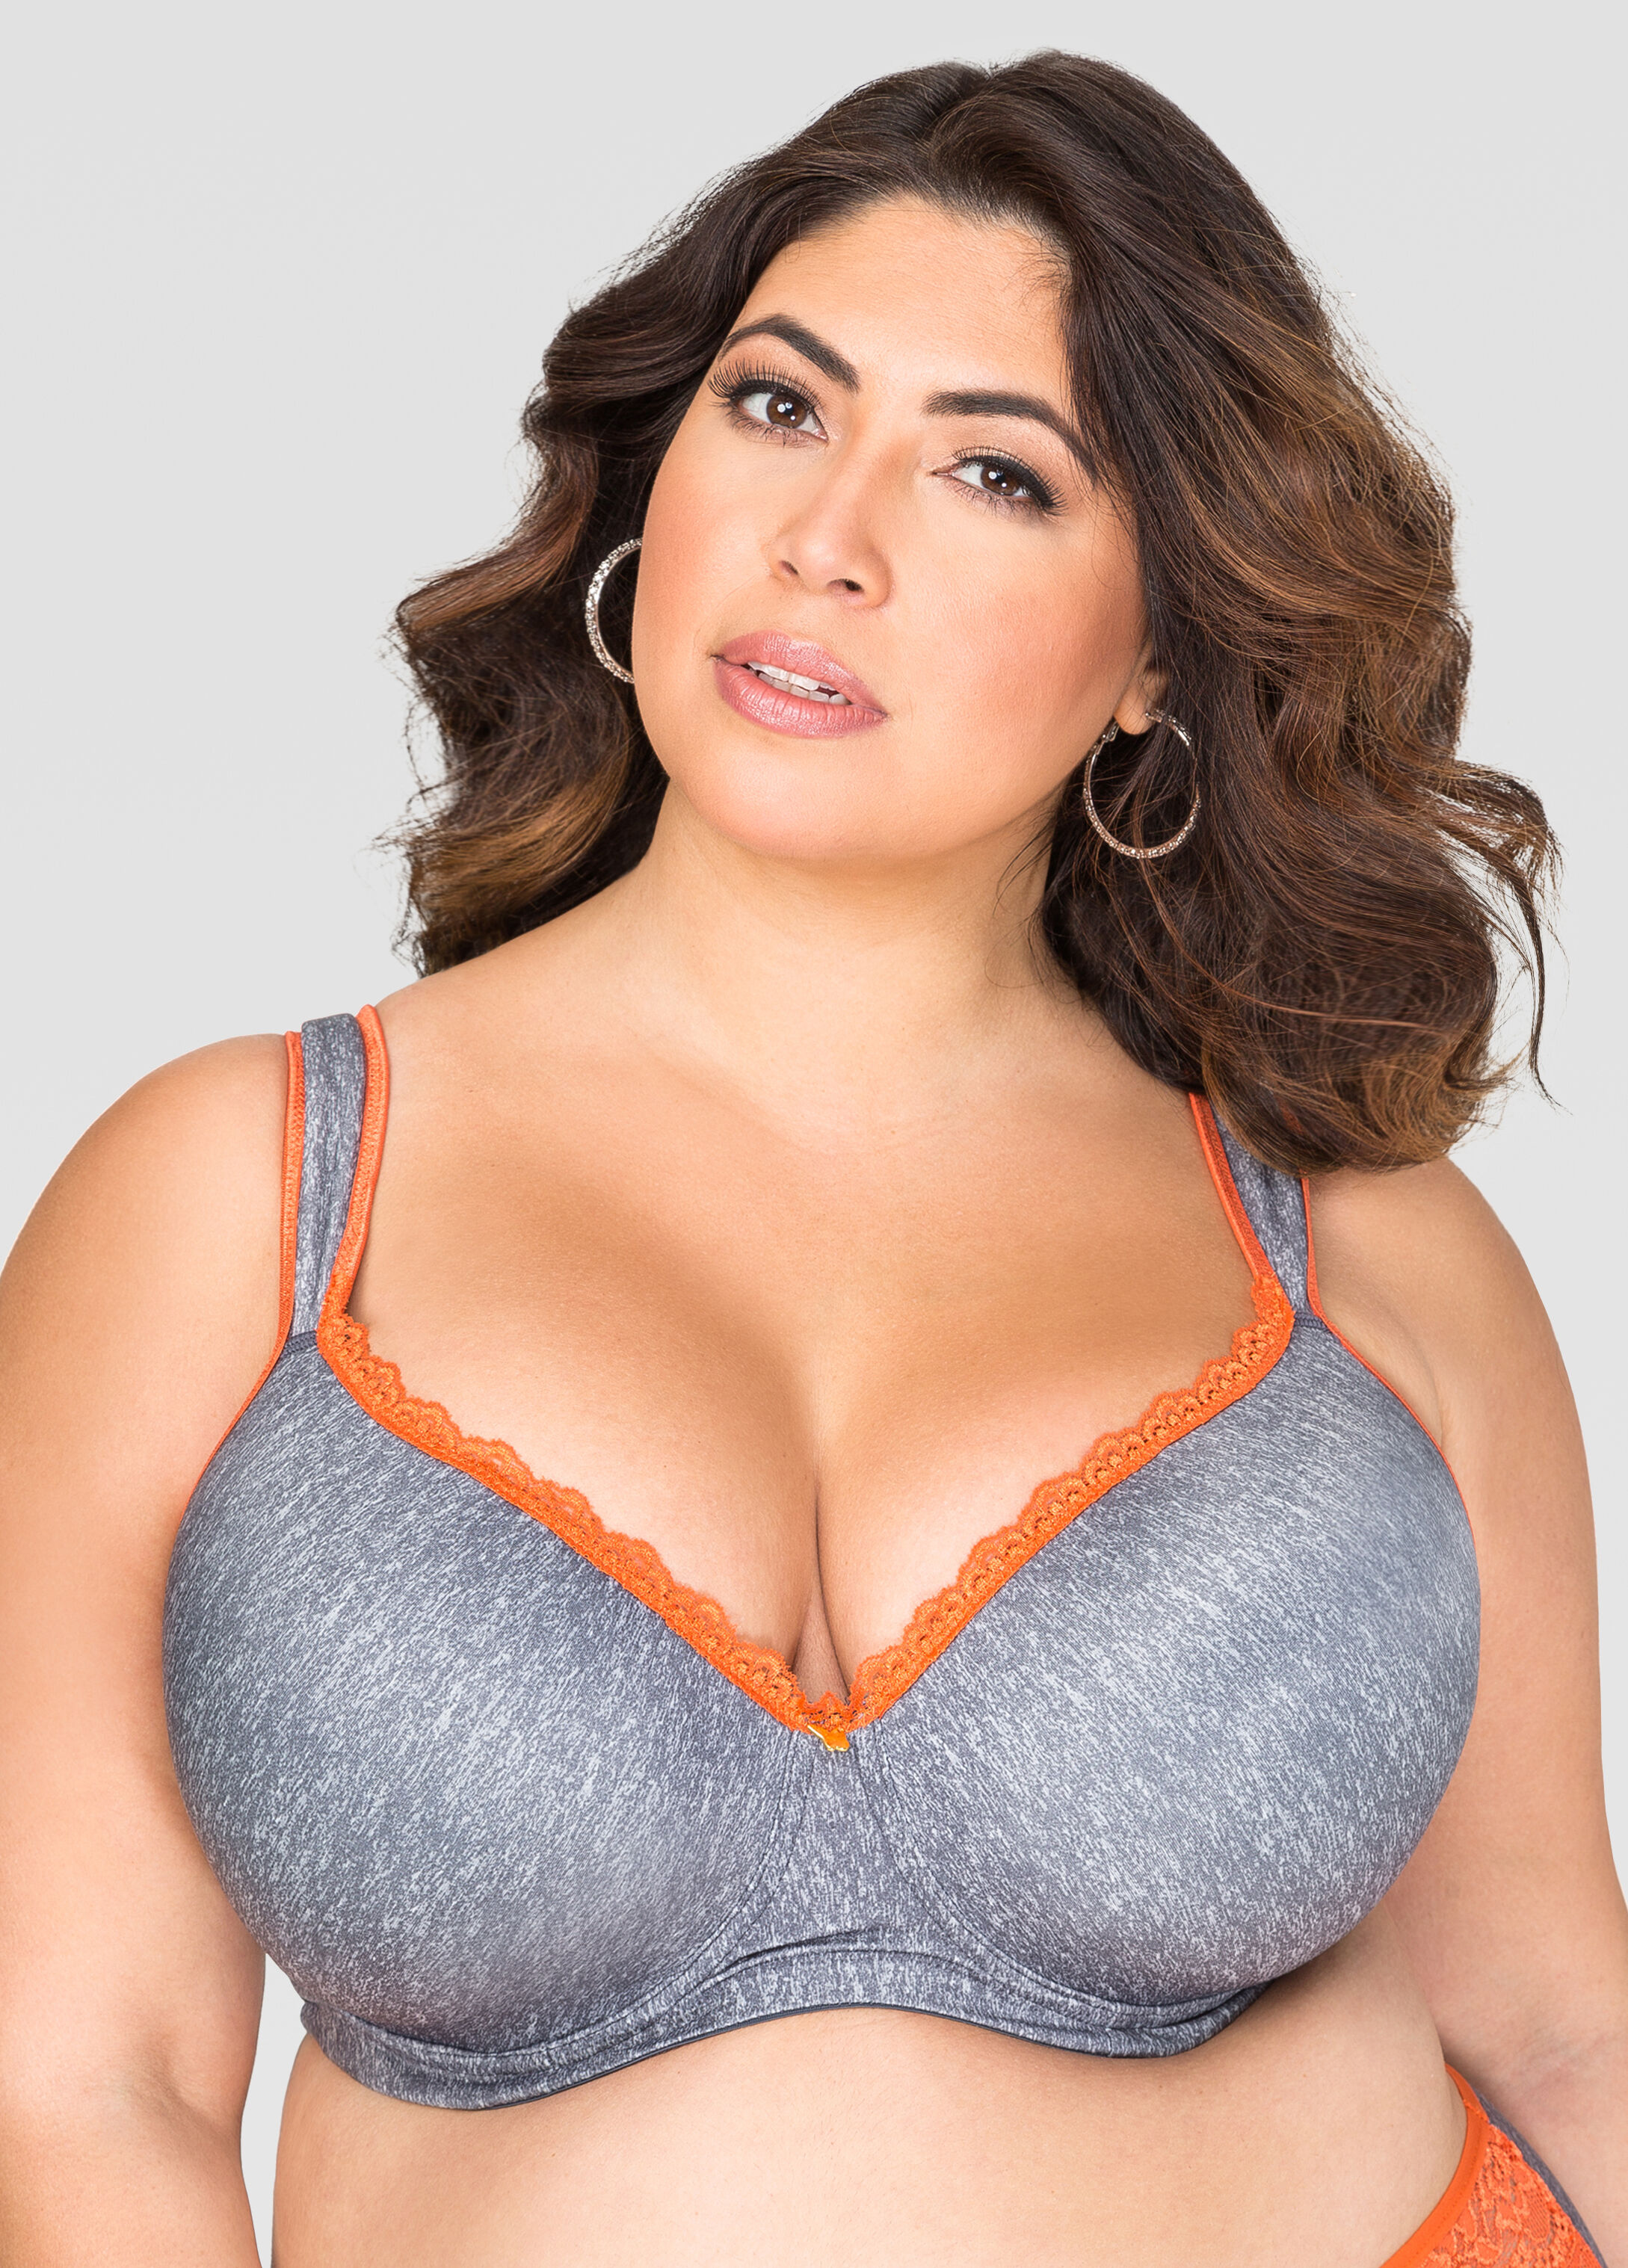 Full Coverage Butterfly Bra - F,G Cups